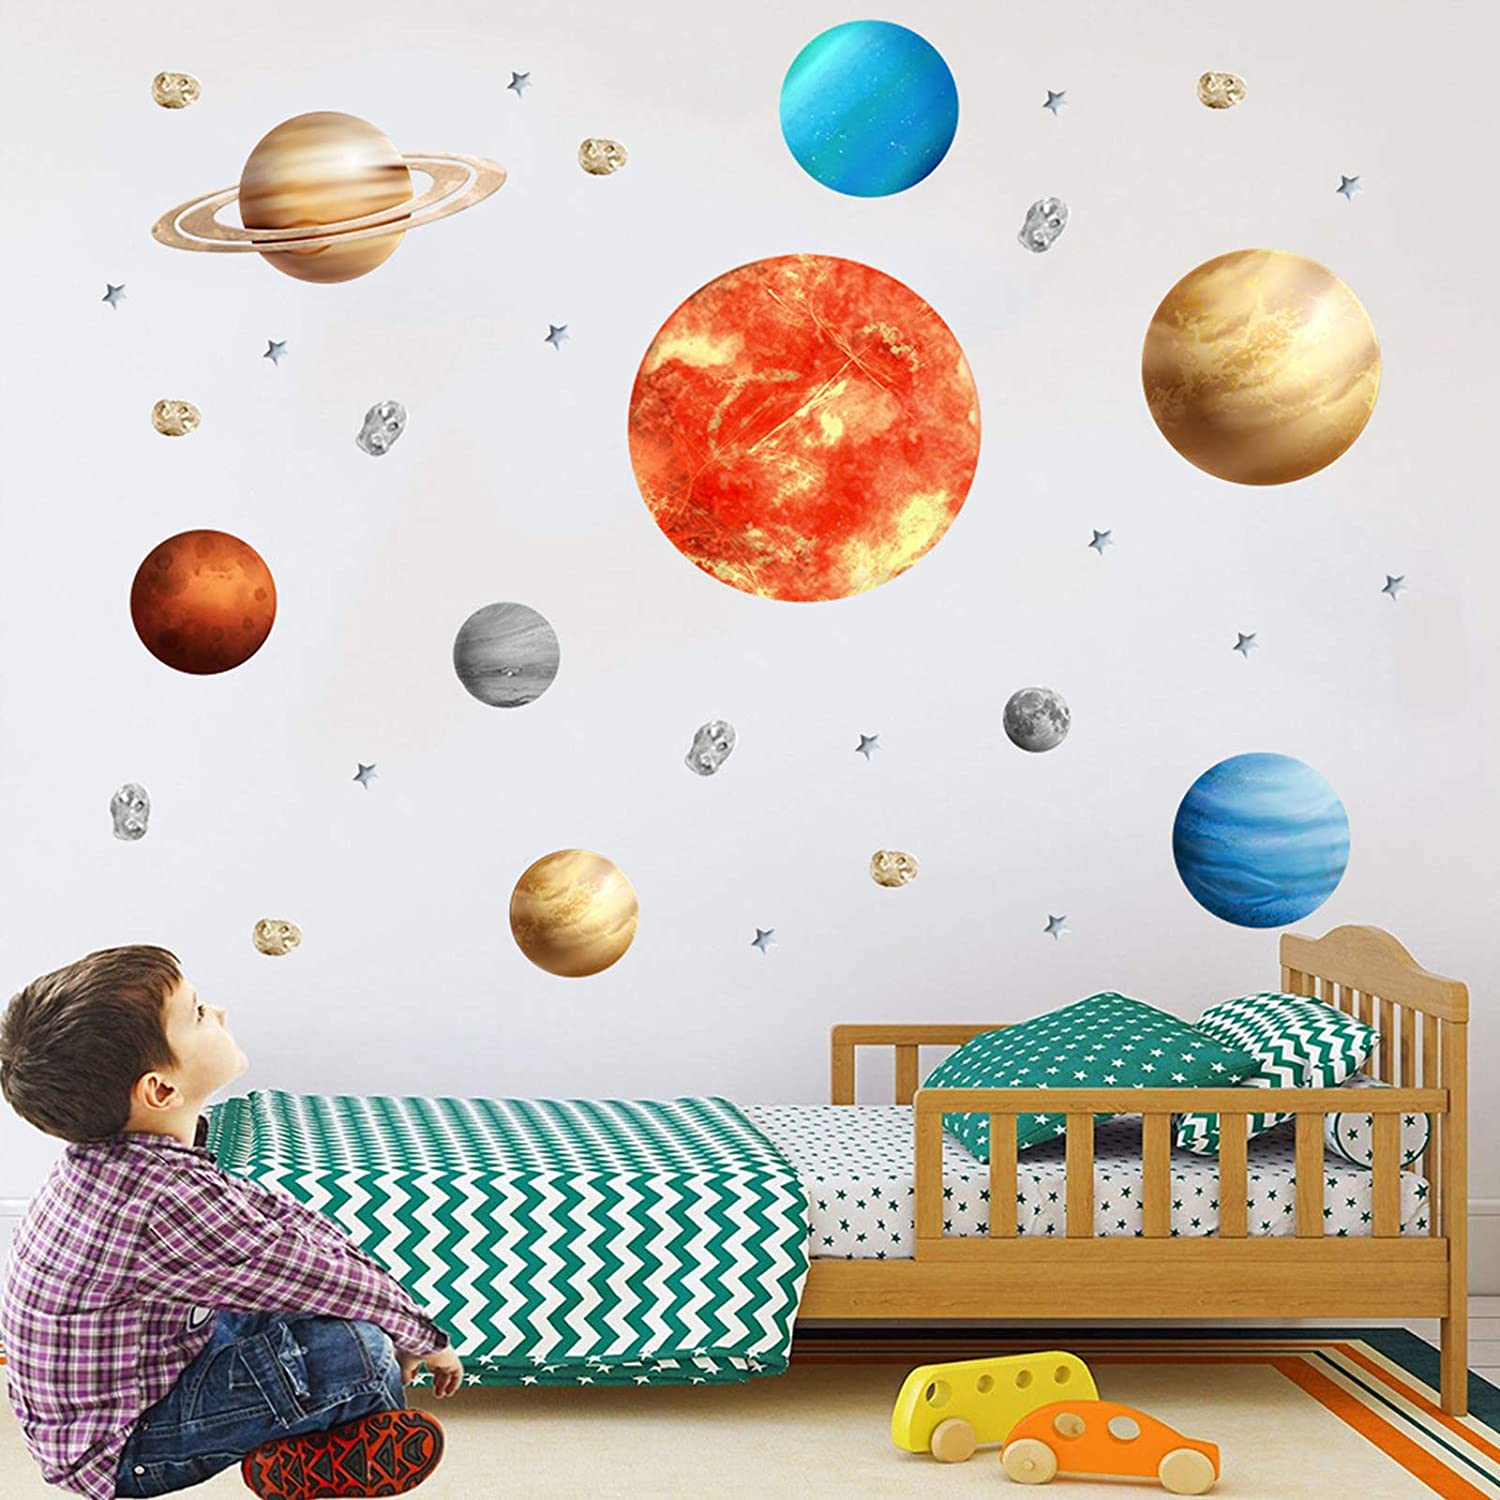 Kids Furniture Decor Storage Nine Planet Wall Stickers Outer Space Galaxy Window Decals Decorations Universe Star Murals Art Decorative Sticker For Home Living Room Bedroom Nursery Diy Holiday Party